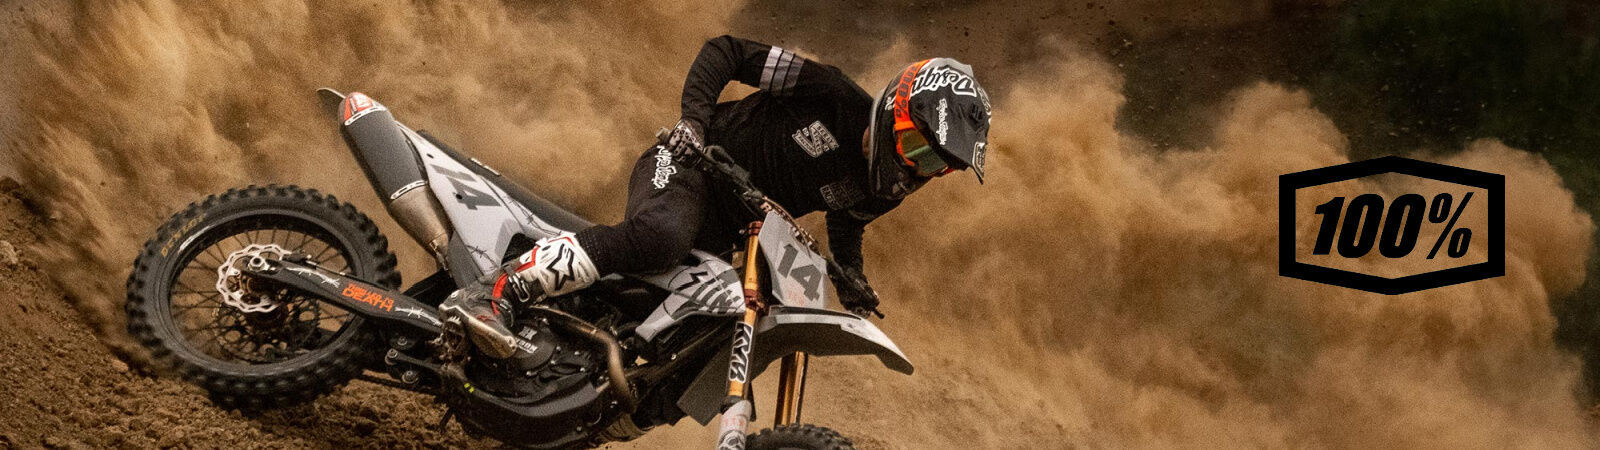 100% - Motocross, BMX, Downhill, and Cycling Accessories  - available at sportique.com